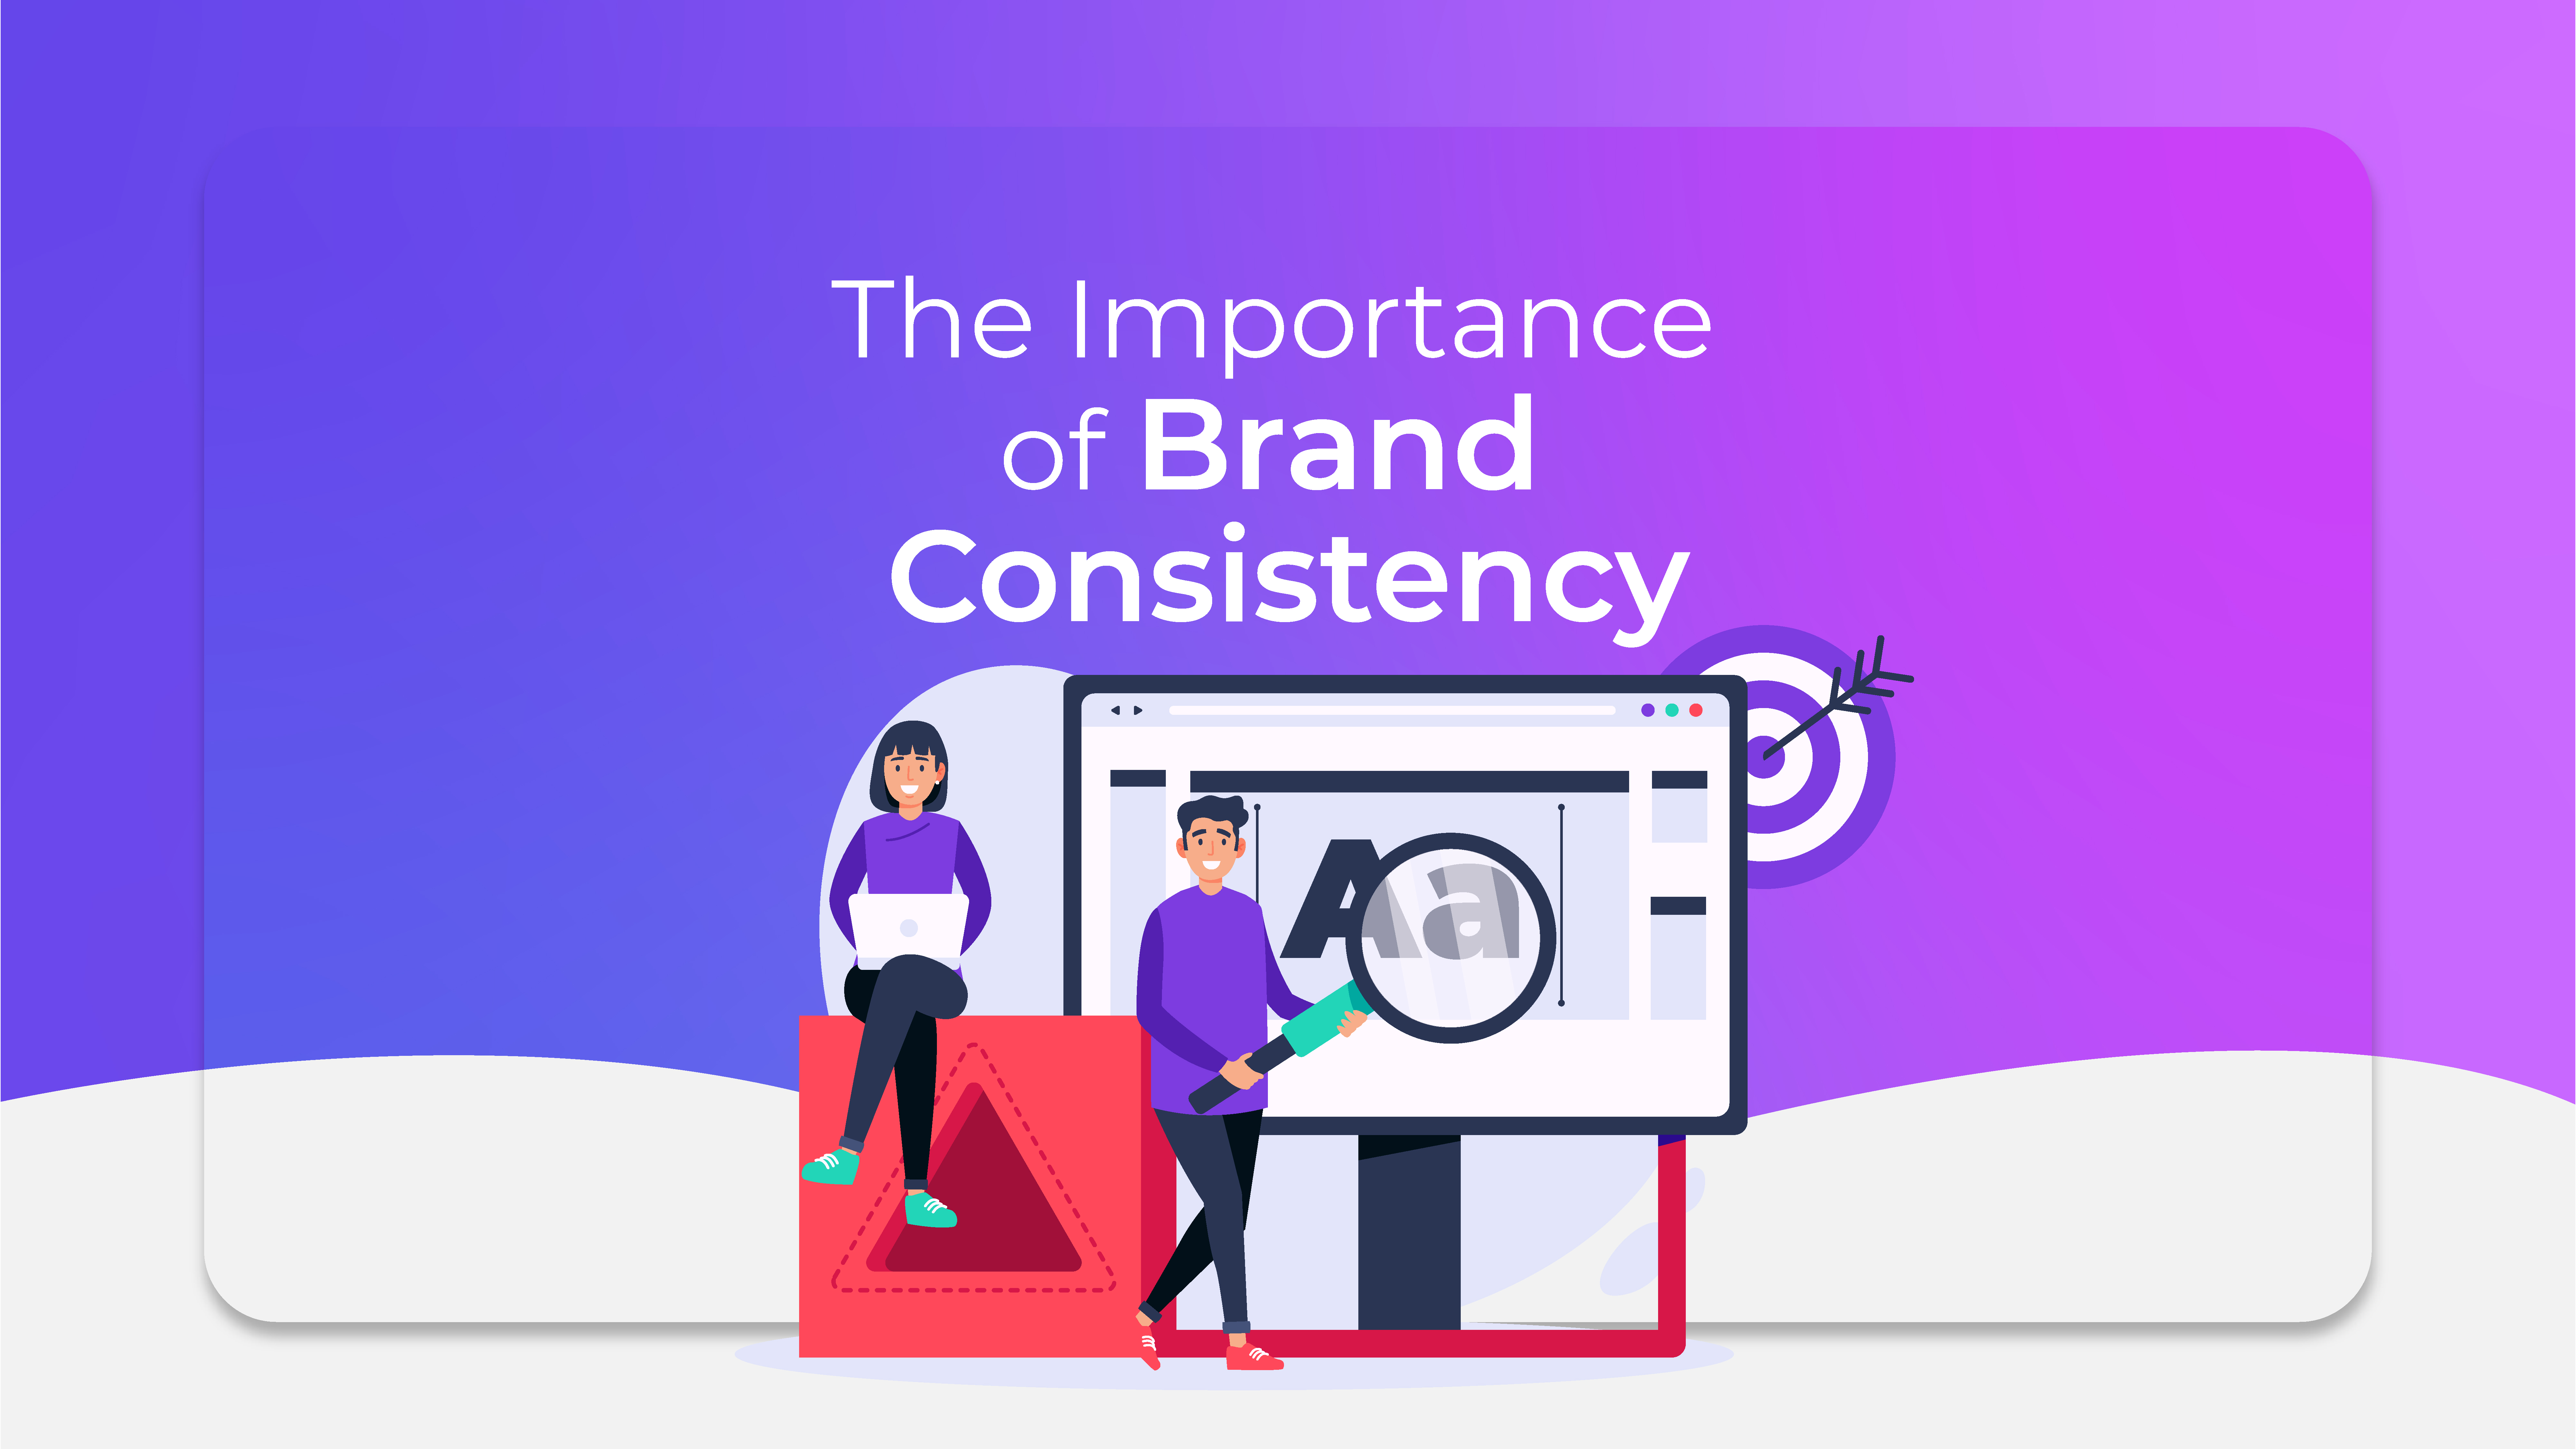 The Importance of Brand Consistency